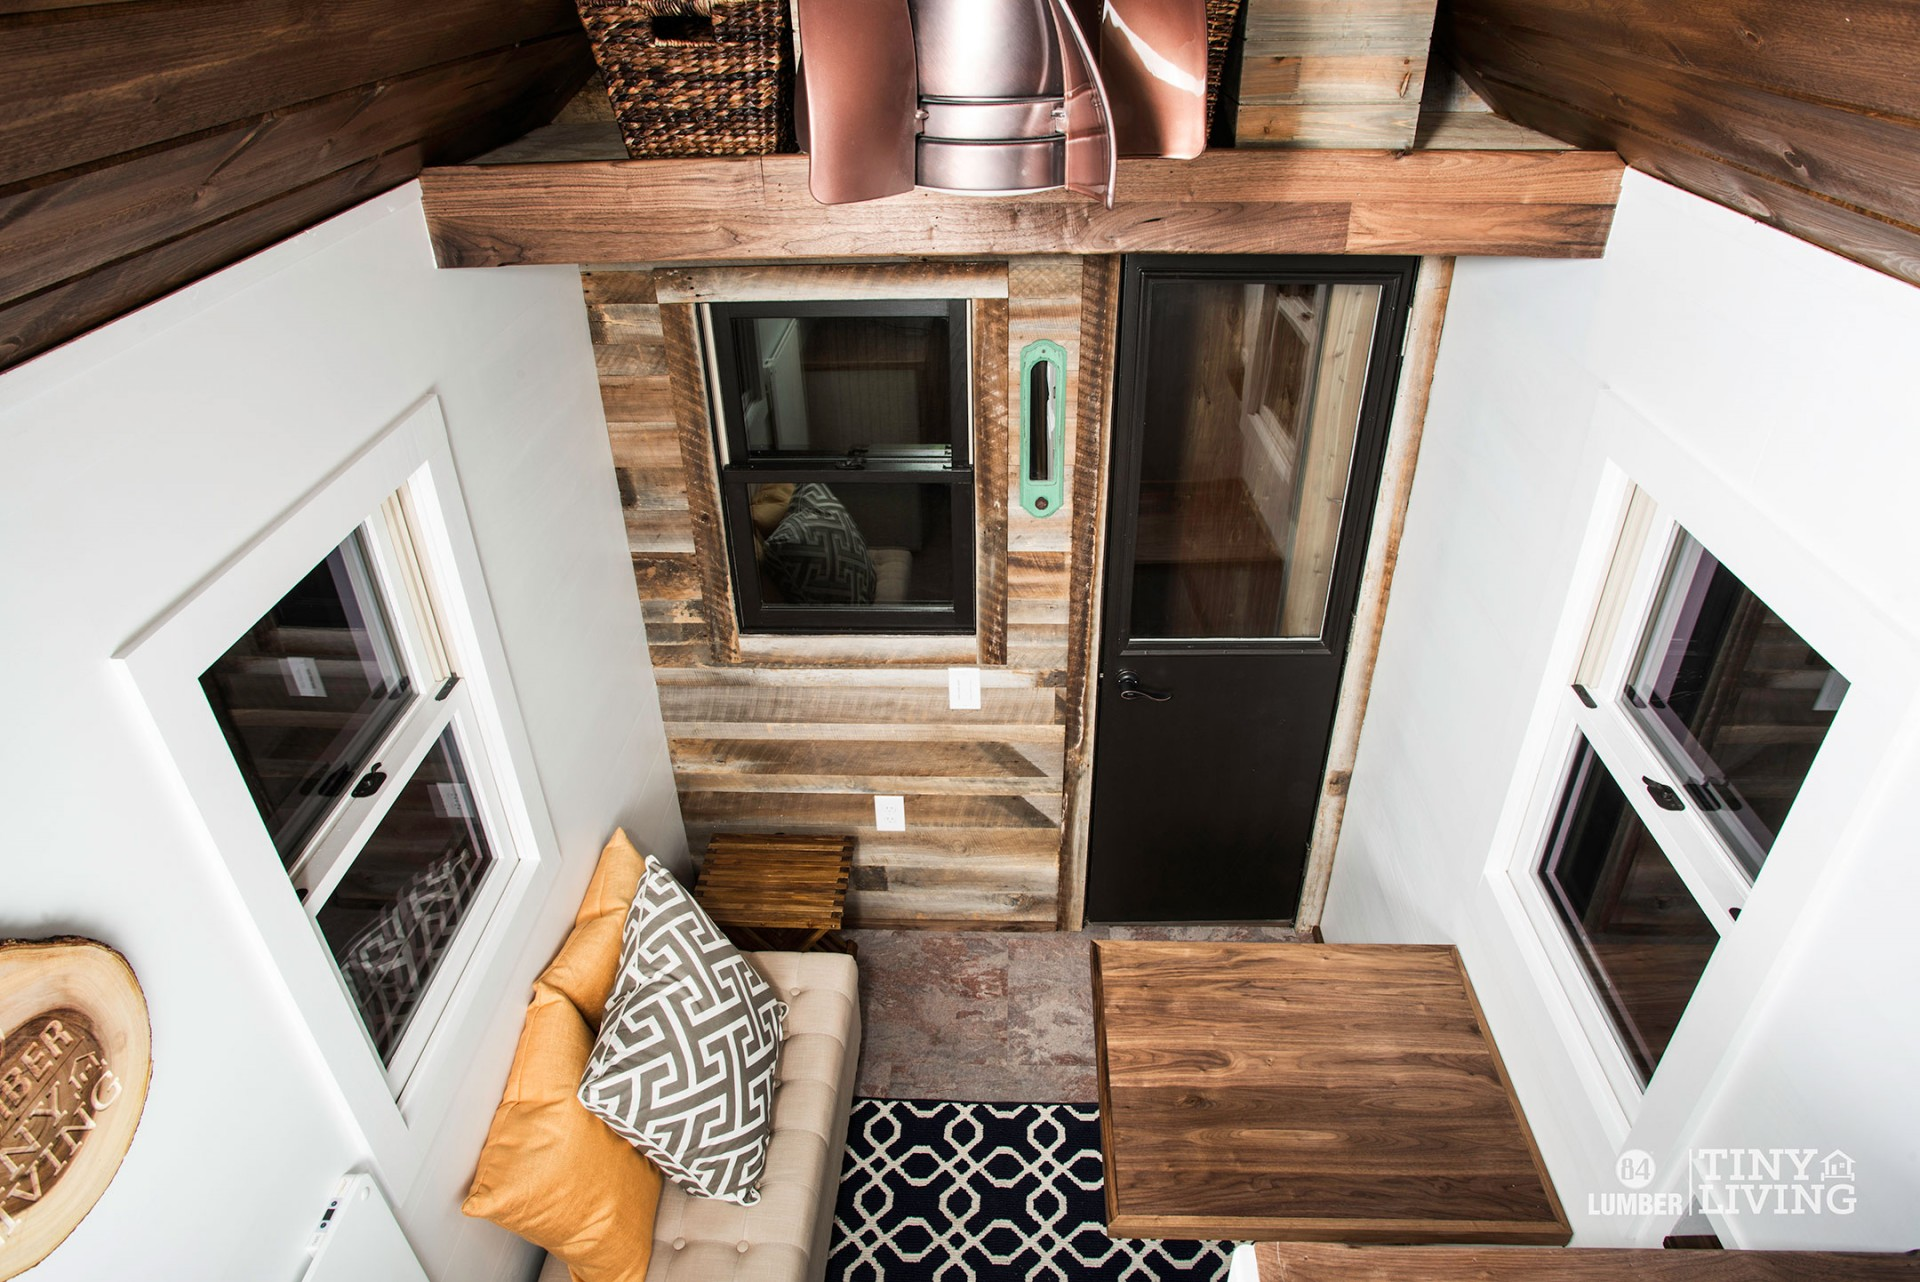 The Roving tiny house prefab model